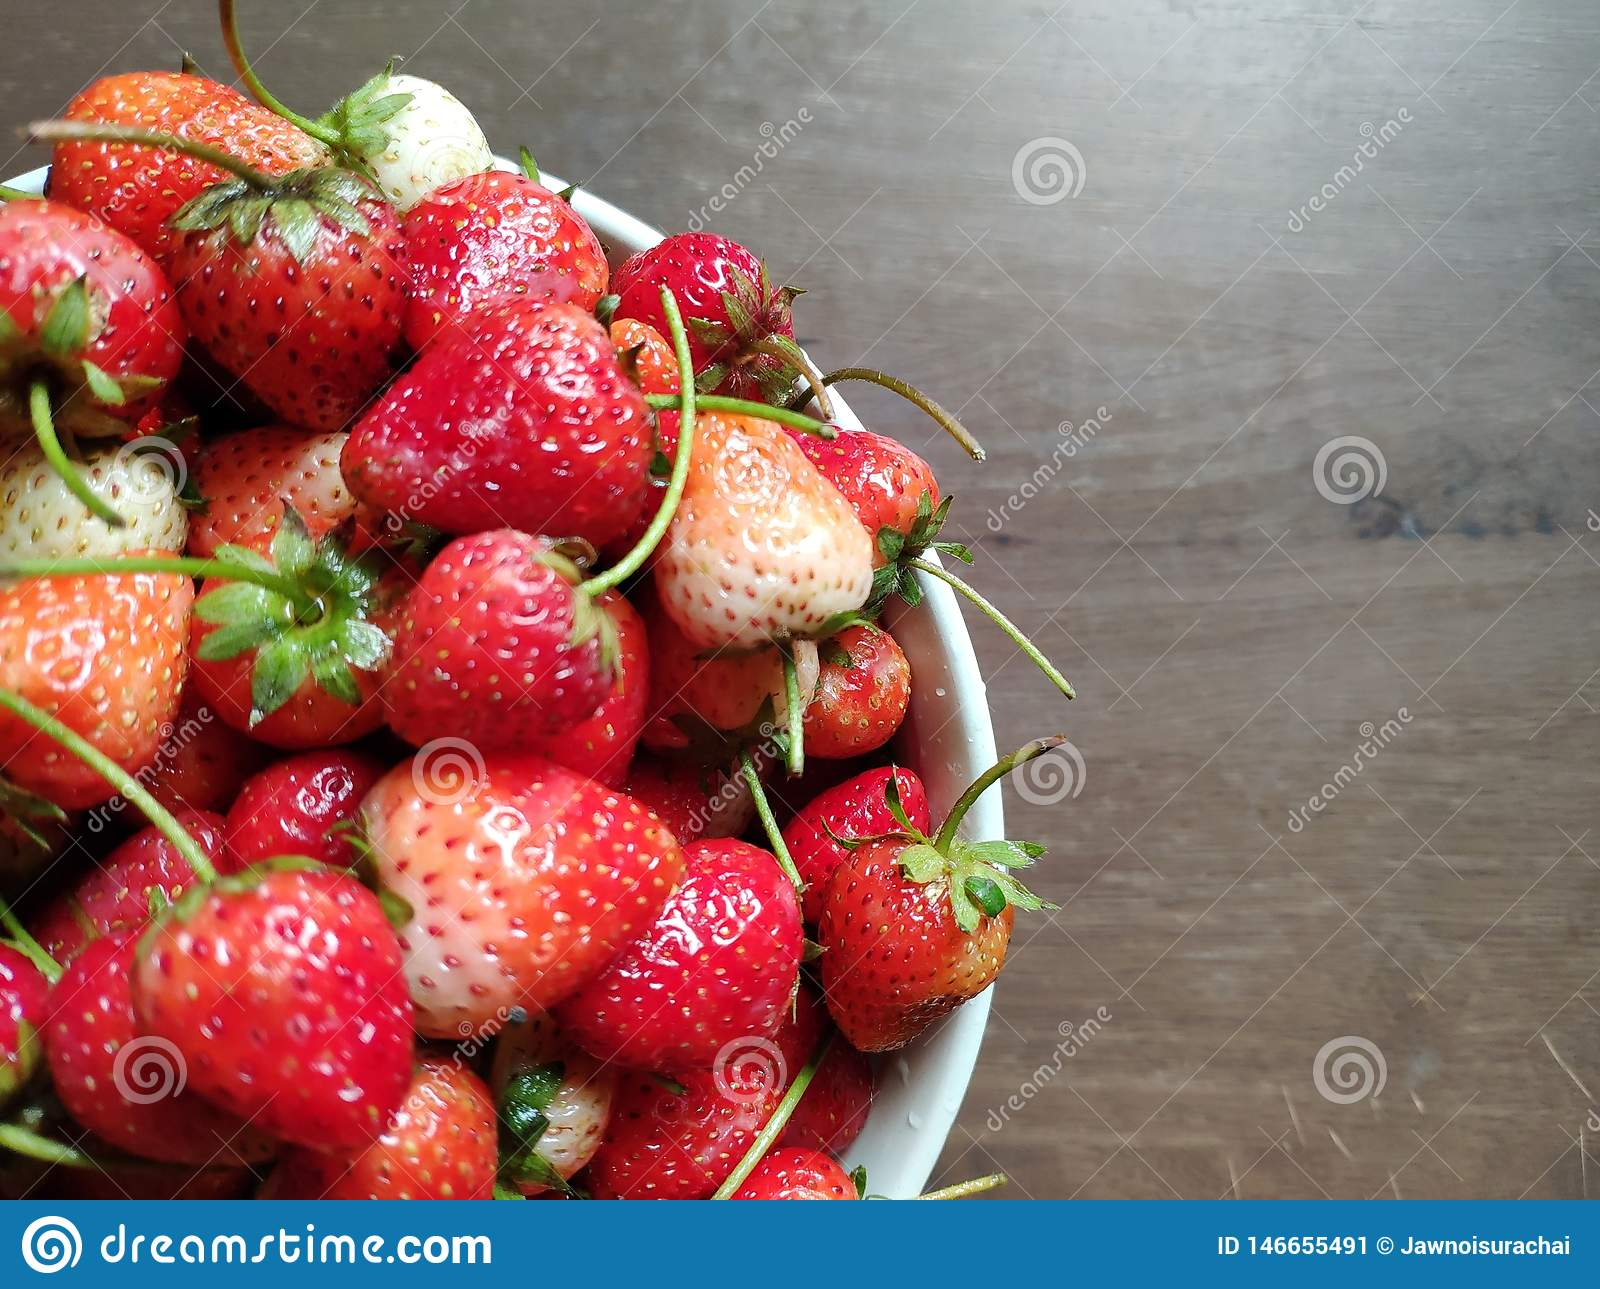 Fresh strawberries are in the white bowl on wooden table.